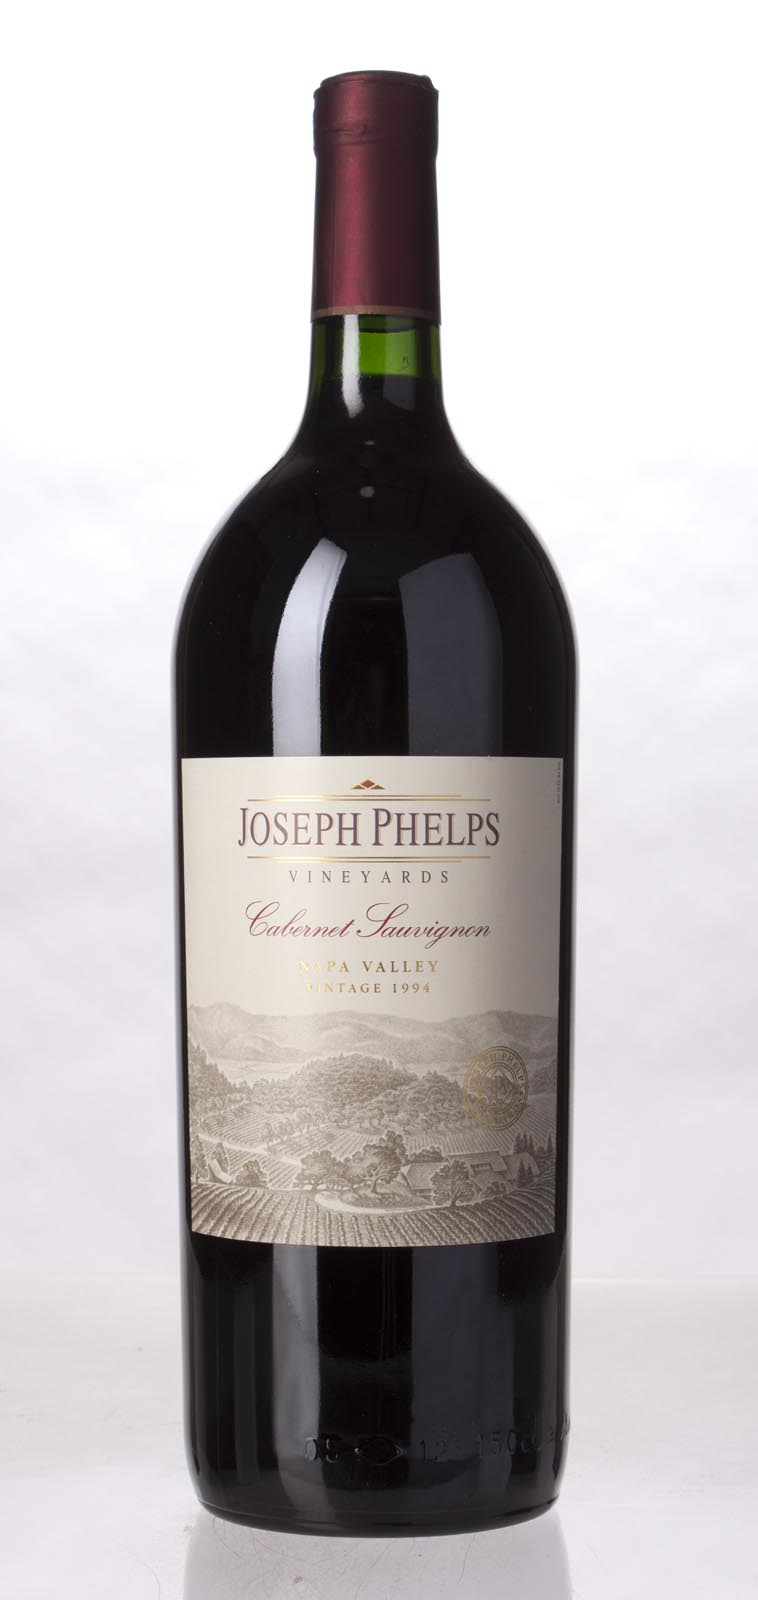 Joseph Phelps Cabernet Sauvignon Napa Valley 1994, 1.5L (WA89) from The BPW - Merchants of rare and fine wines.